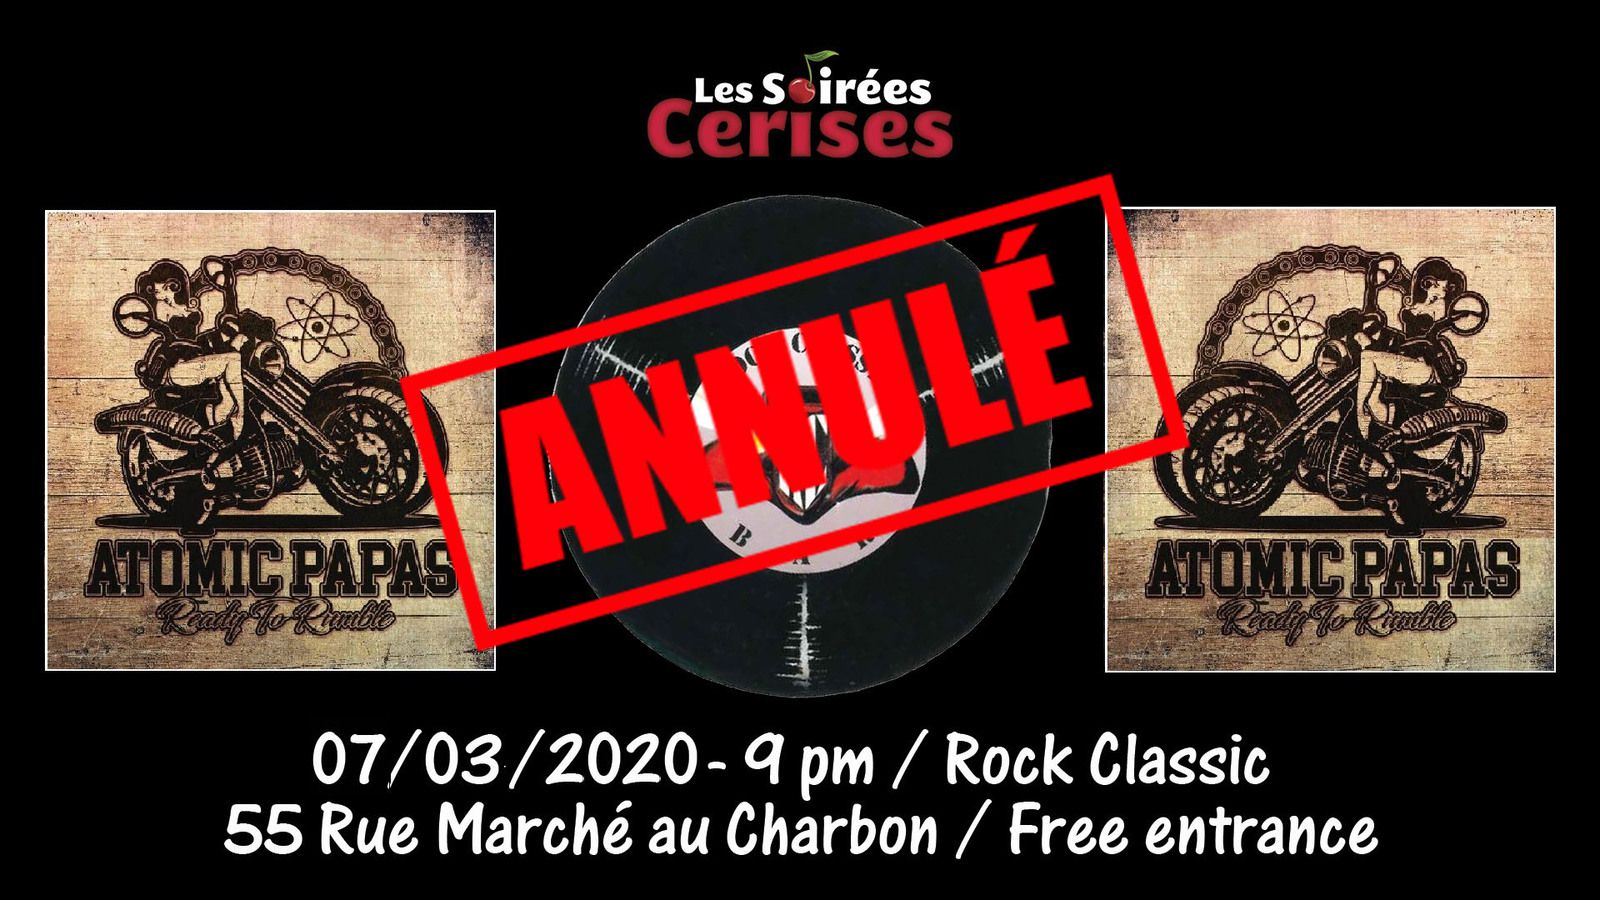 🎵 Atomic Papas (It) @ Rock Classic - 07/03/2020 - annulé